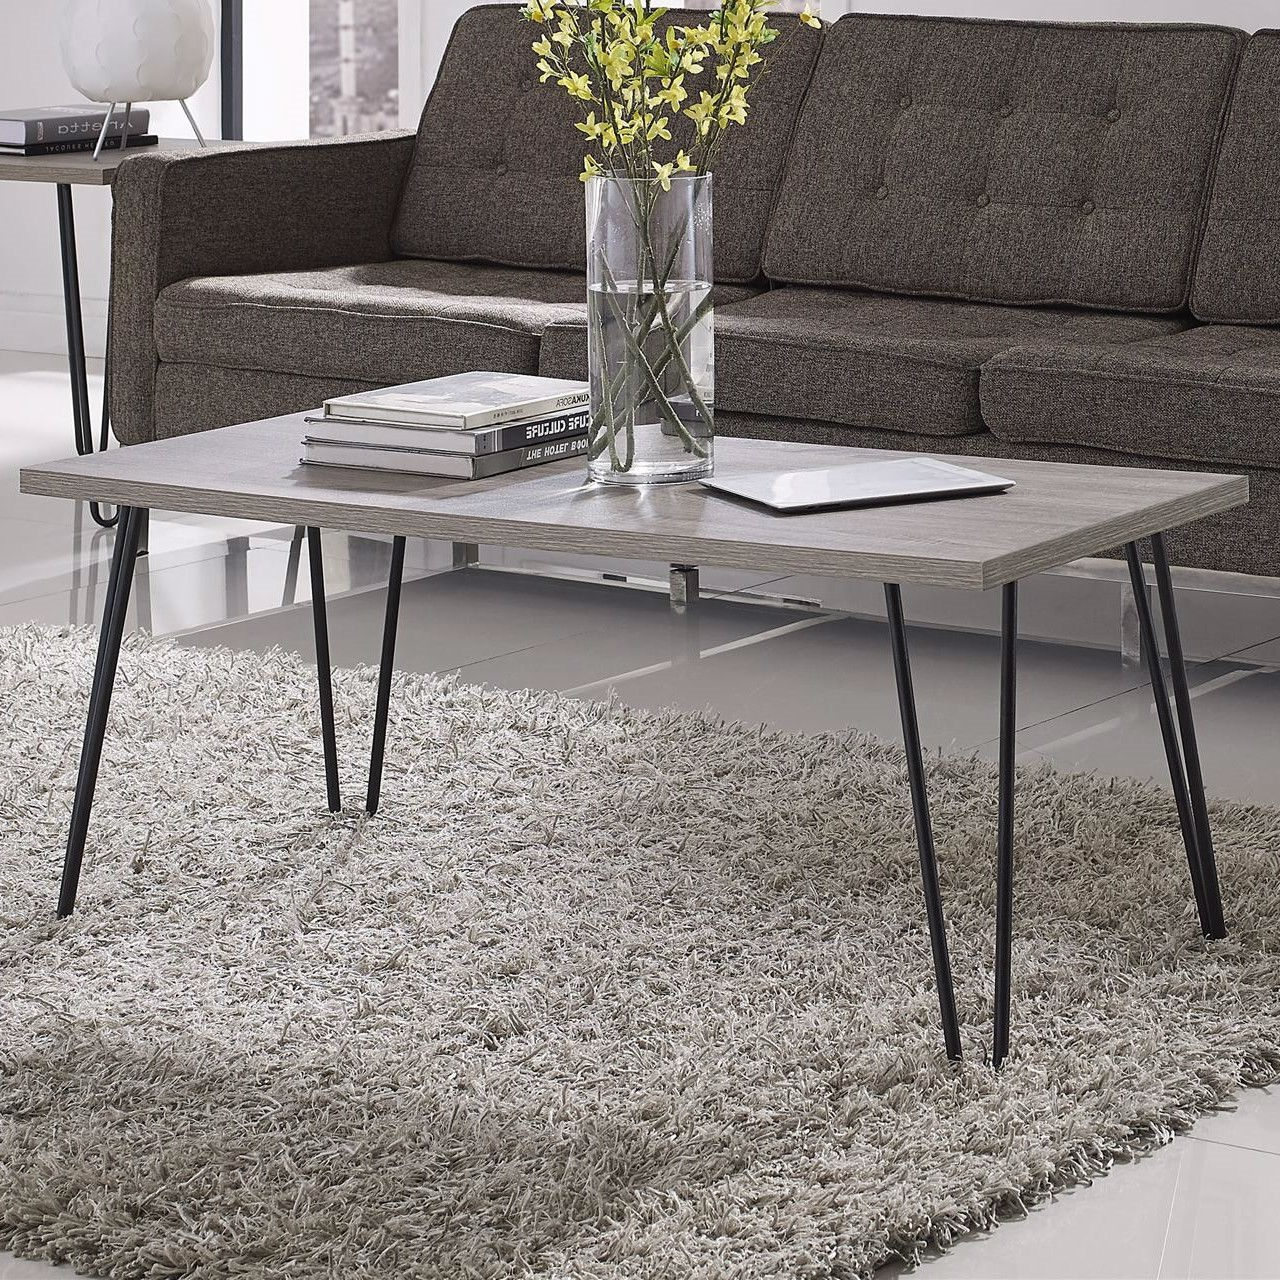 Modern Clic Vintage Style Coffee Table With Wood Top And Metal Legs